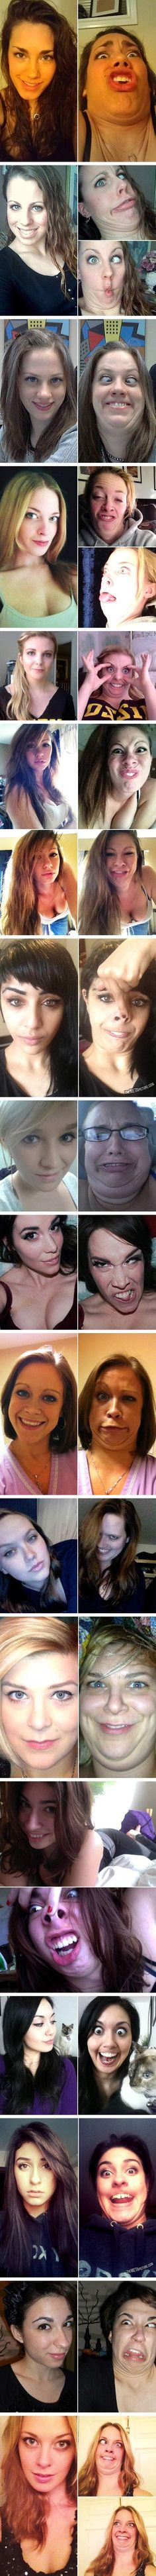 As far as I am concerned, these are the only acceptable selfies!